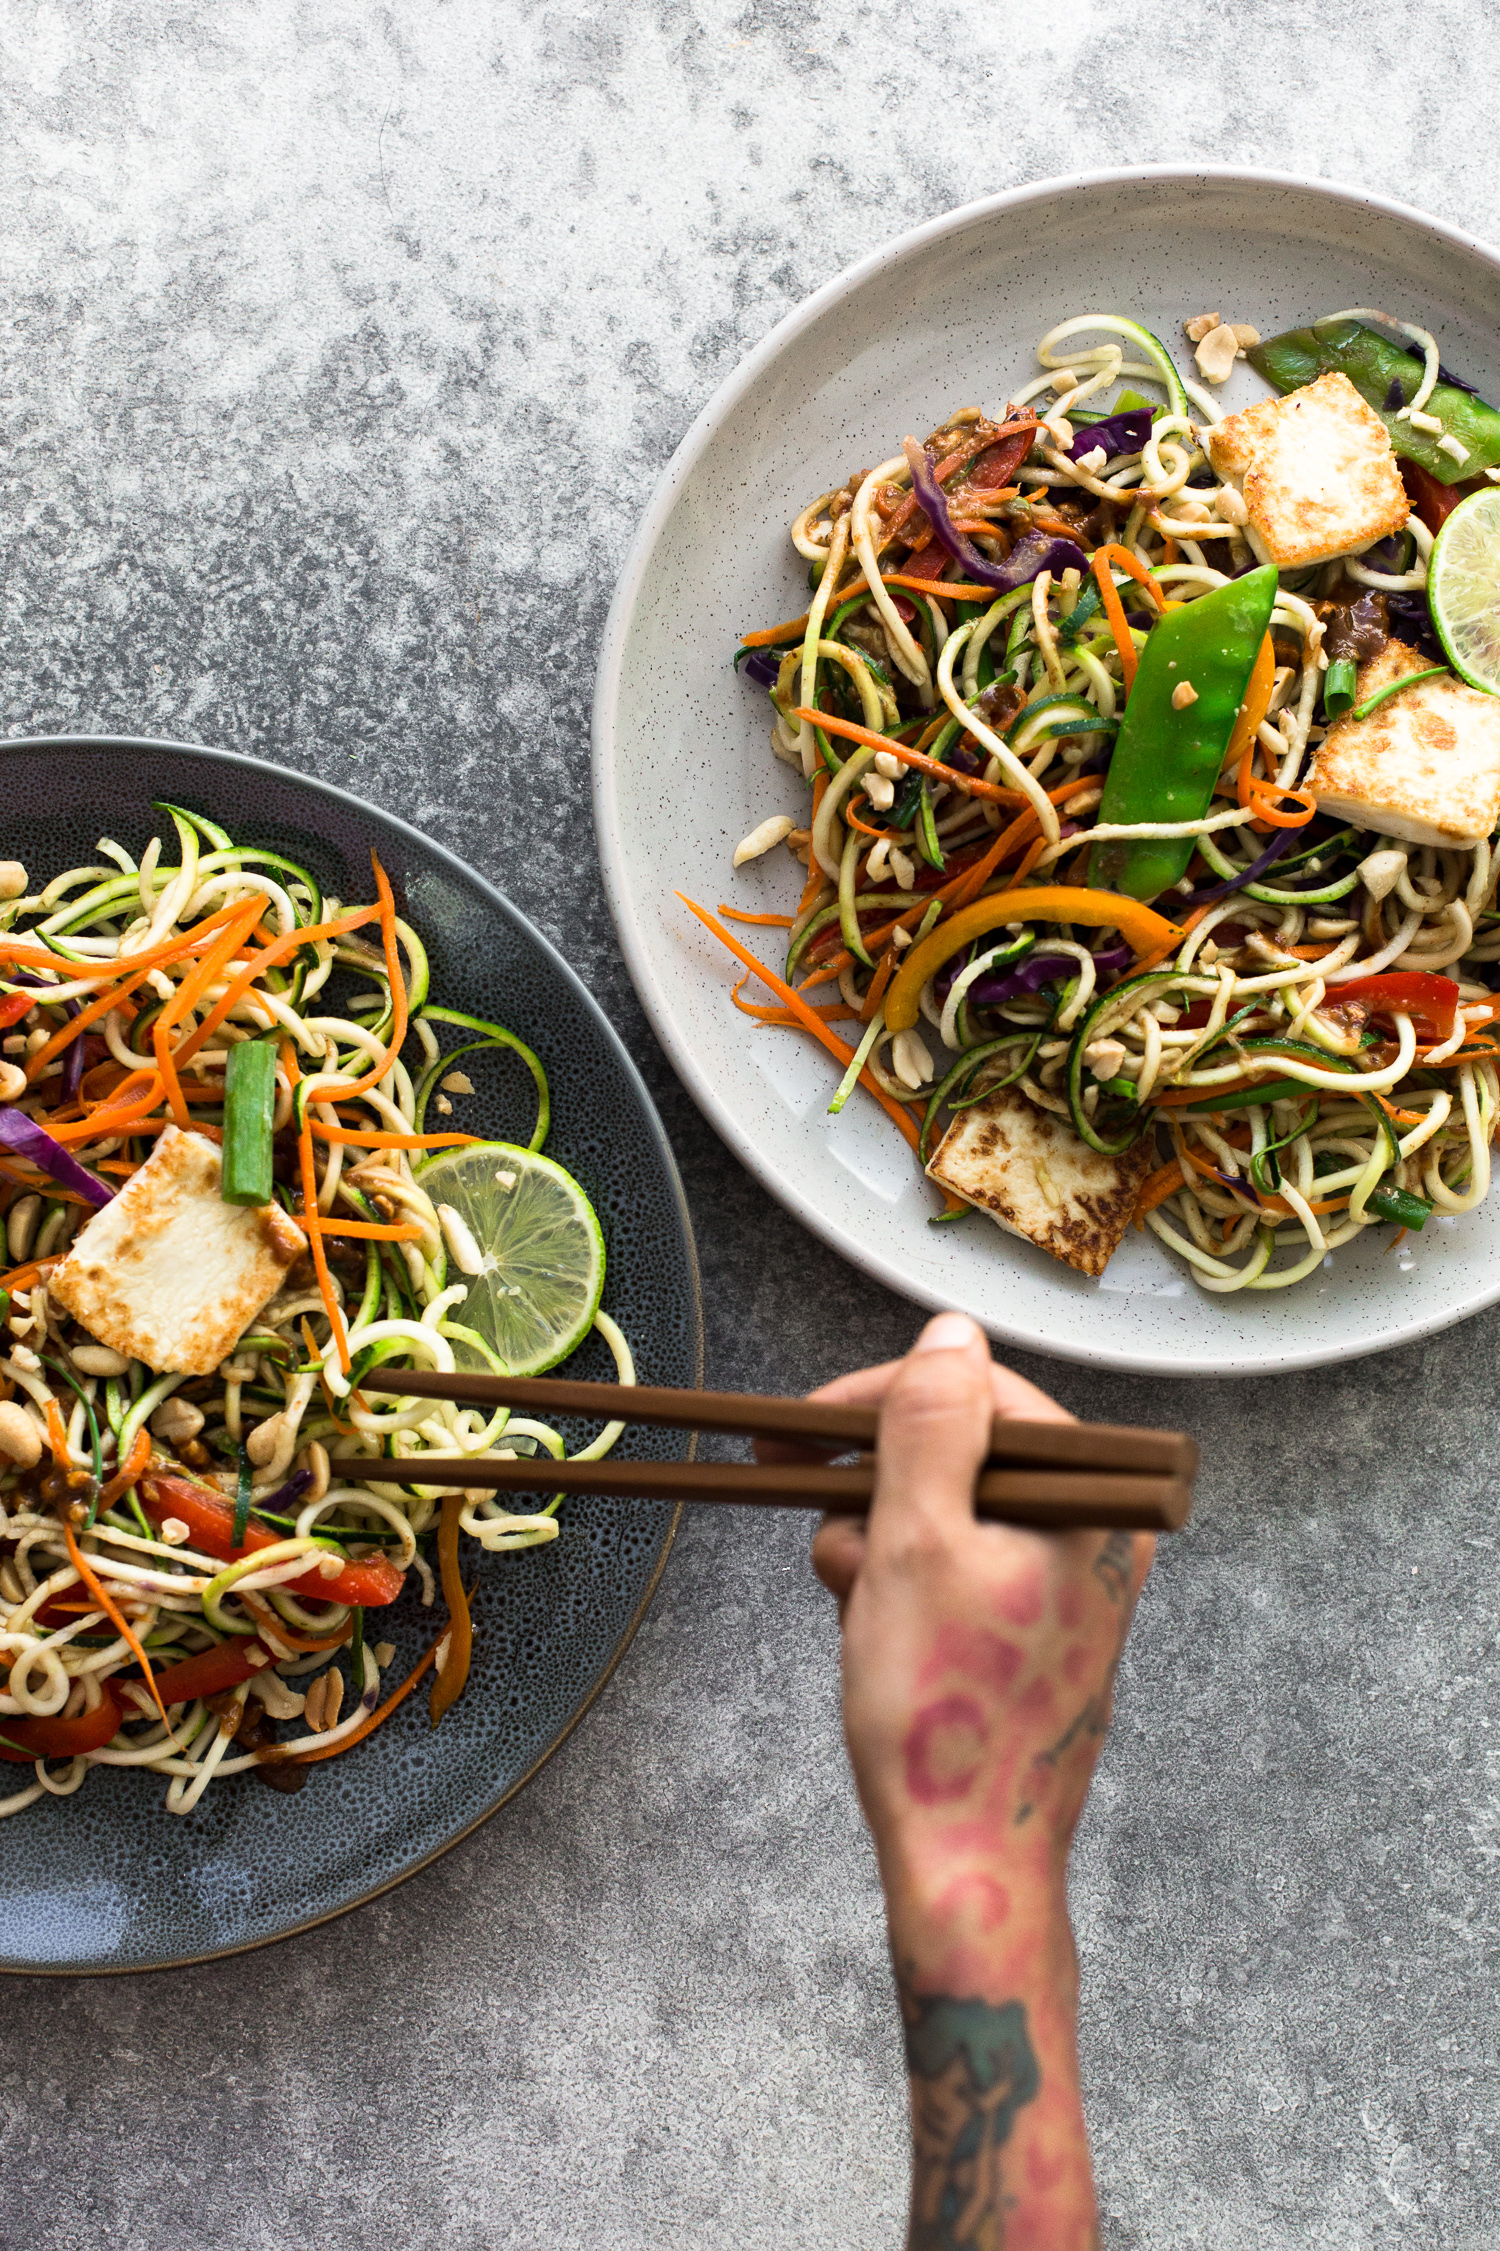 Delicious, healthy and light Asian Rainbow Zucchini Noodles with Crispy Tofu and an Almond Butter Dressing. Vegan, Gluten Free, Ready in Under 25 minutes. #vegan #zucchini #zoodle #padthai #vegetarian #lowcarb #tofu #peppers #healthy #simple #asian #almondbutter #dressing #glutenfree